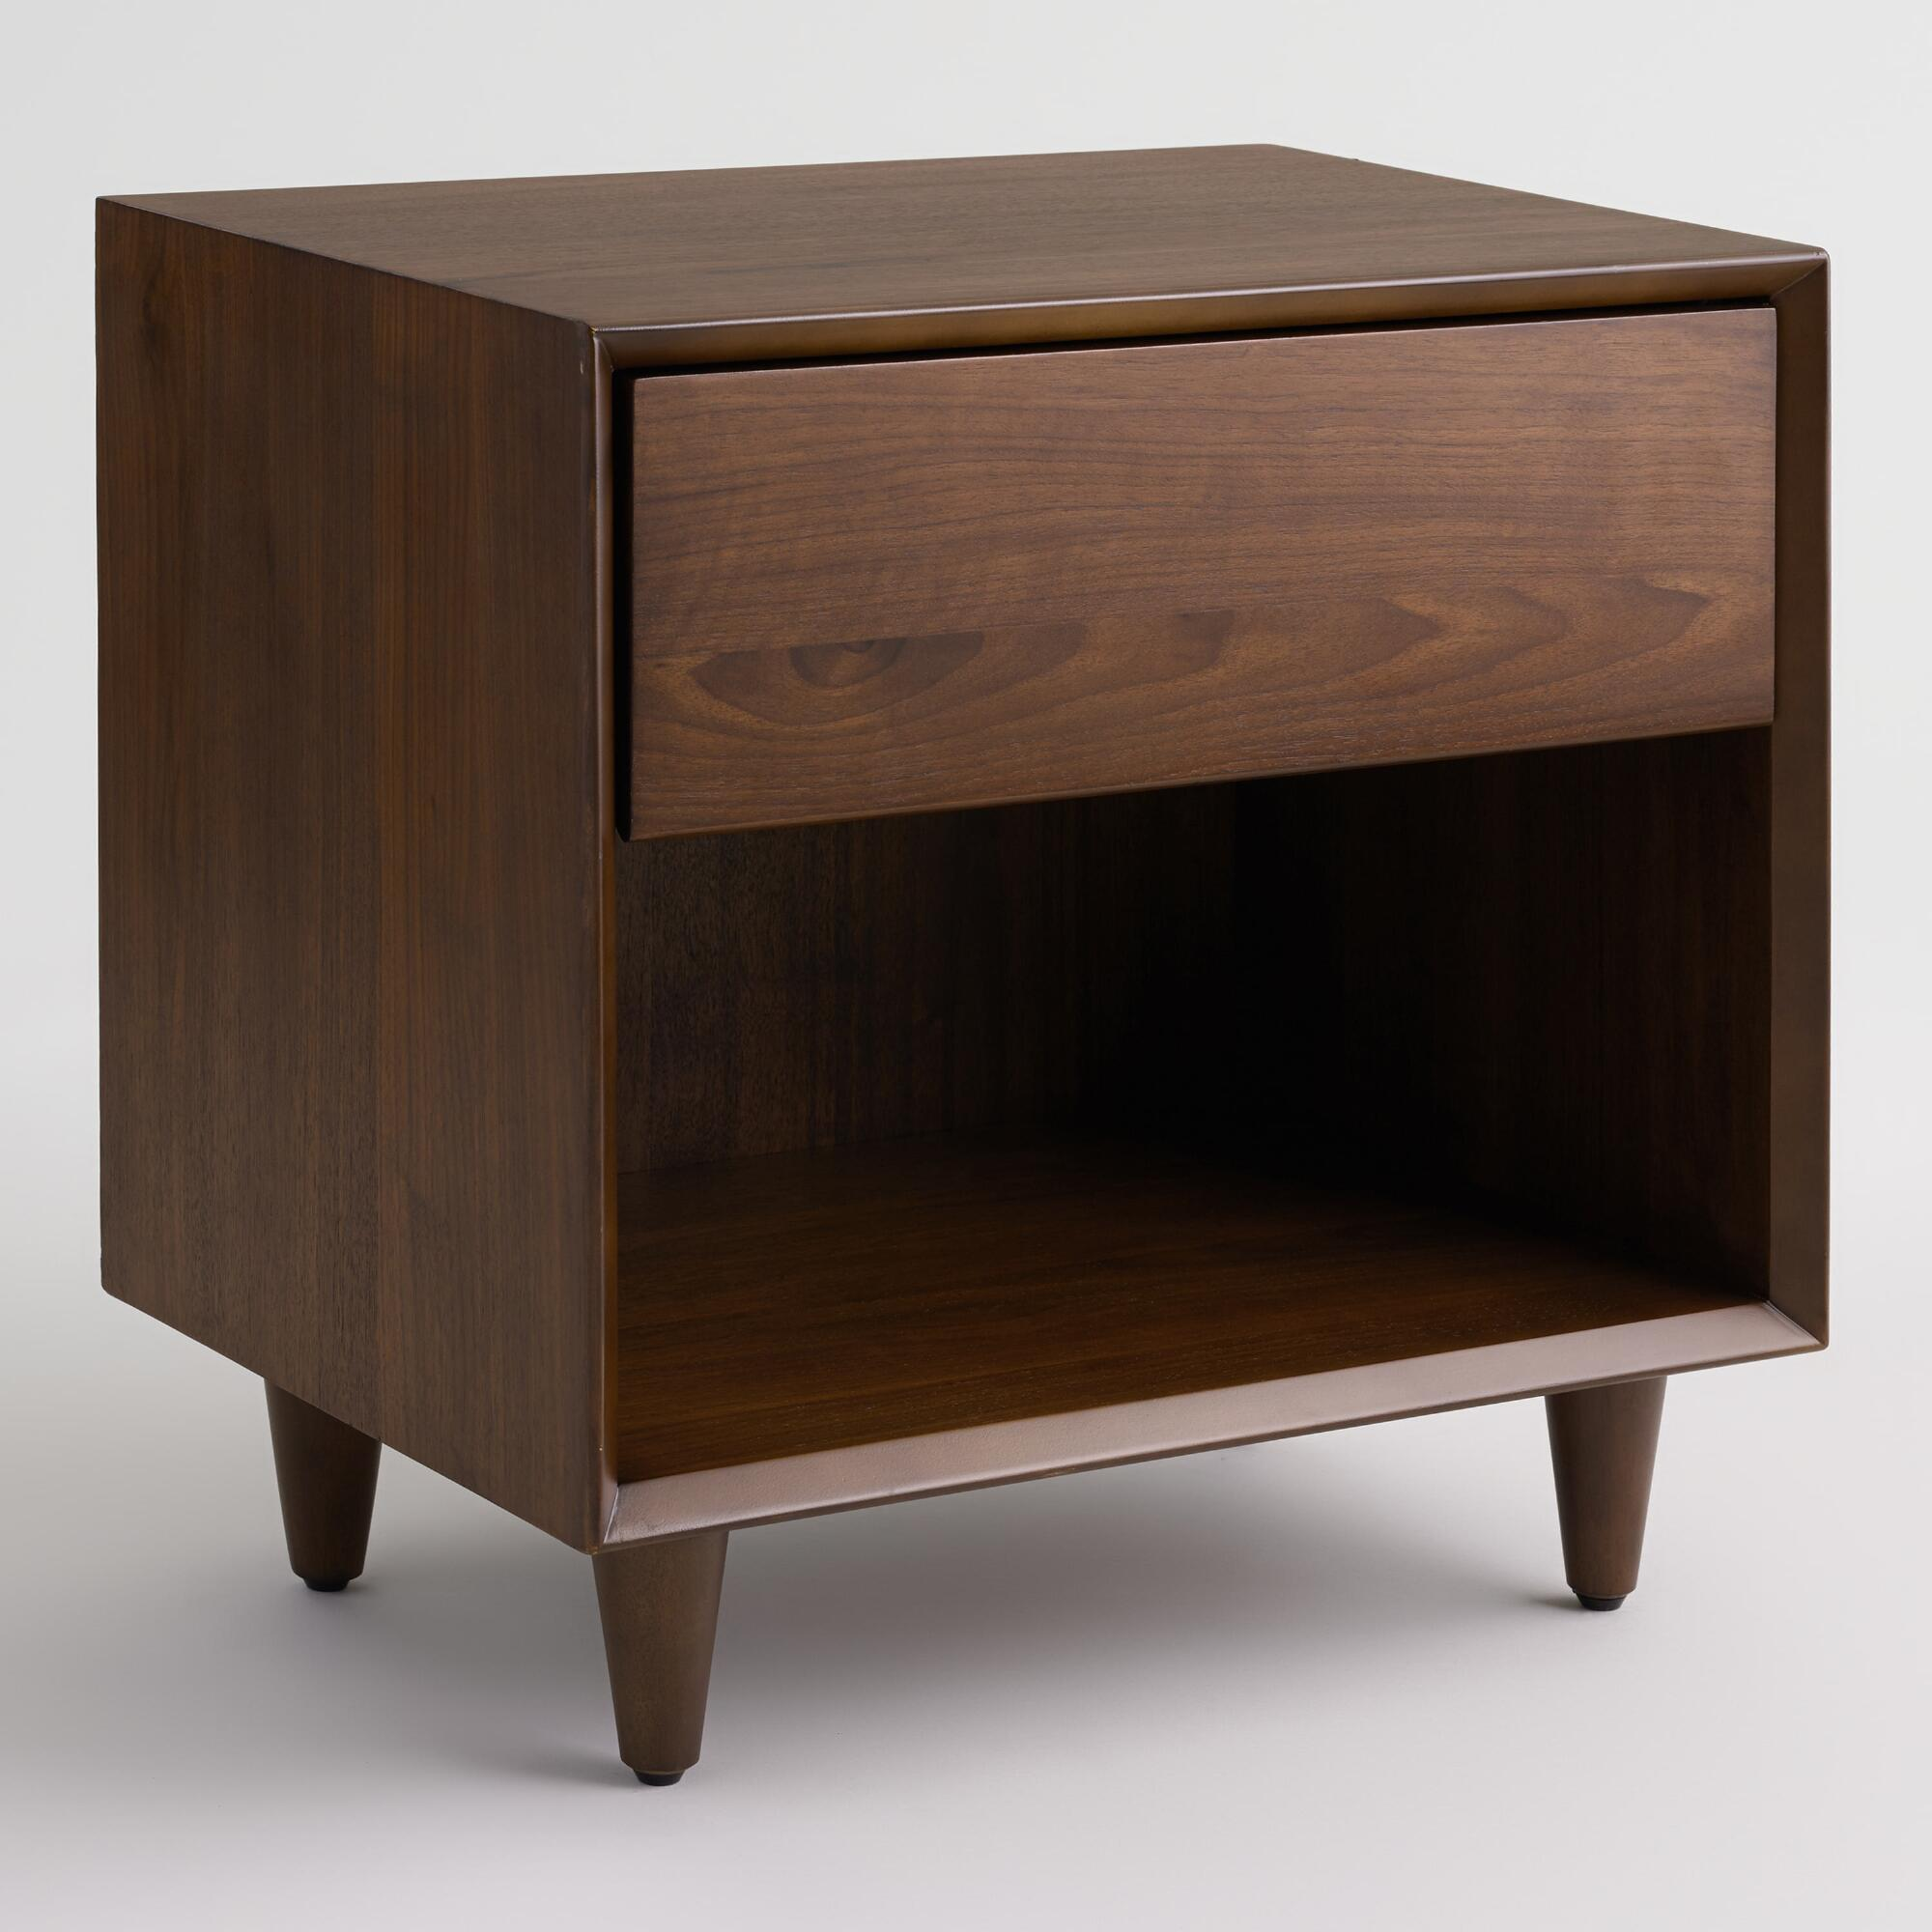 Cheap end tables near me baldwin 3 100 tall tables for Coffee table near me